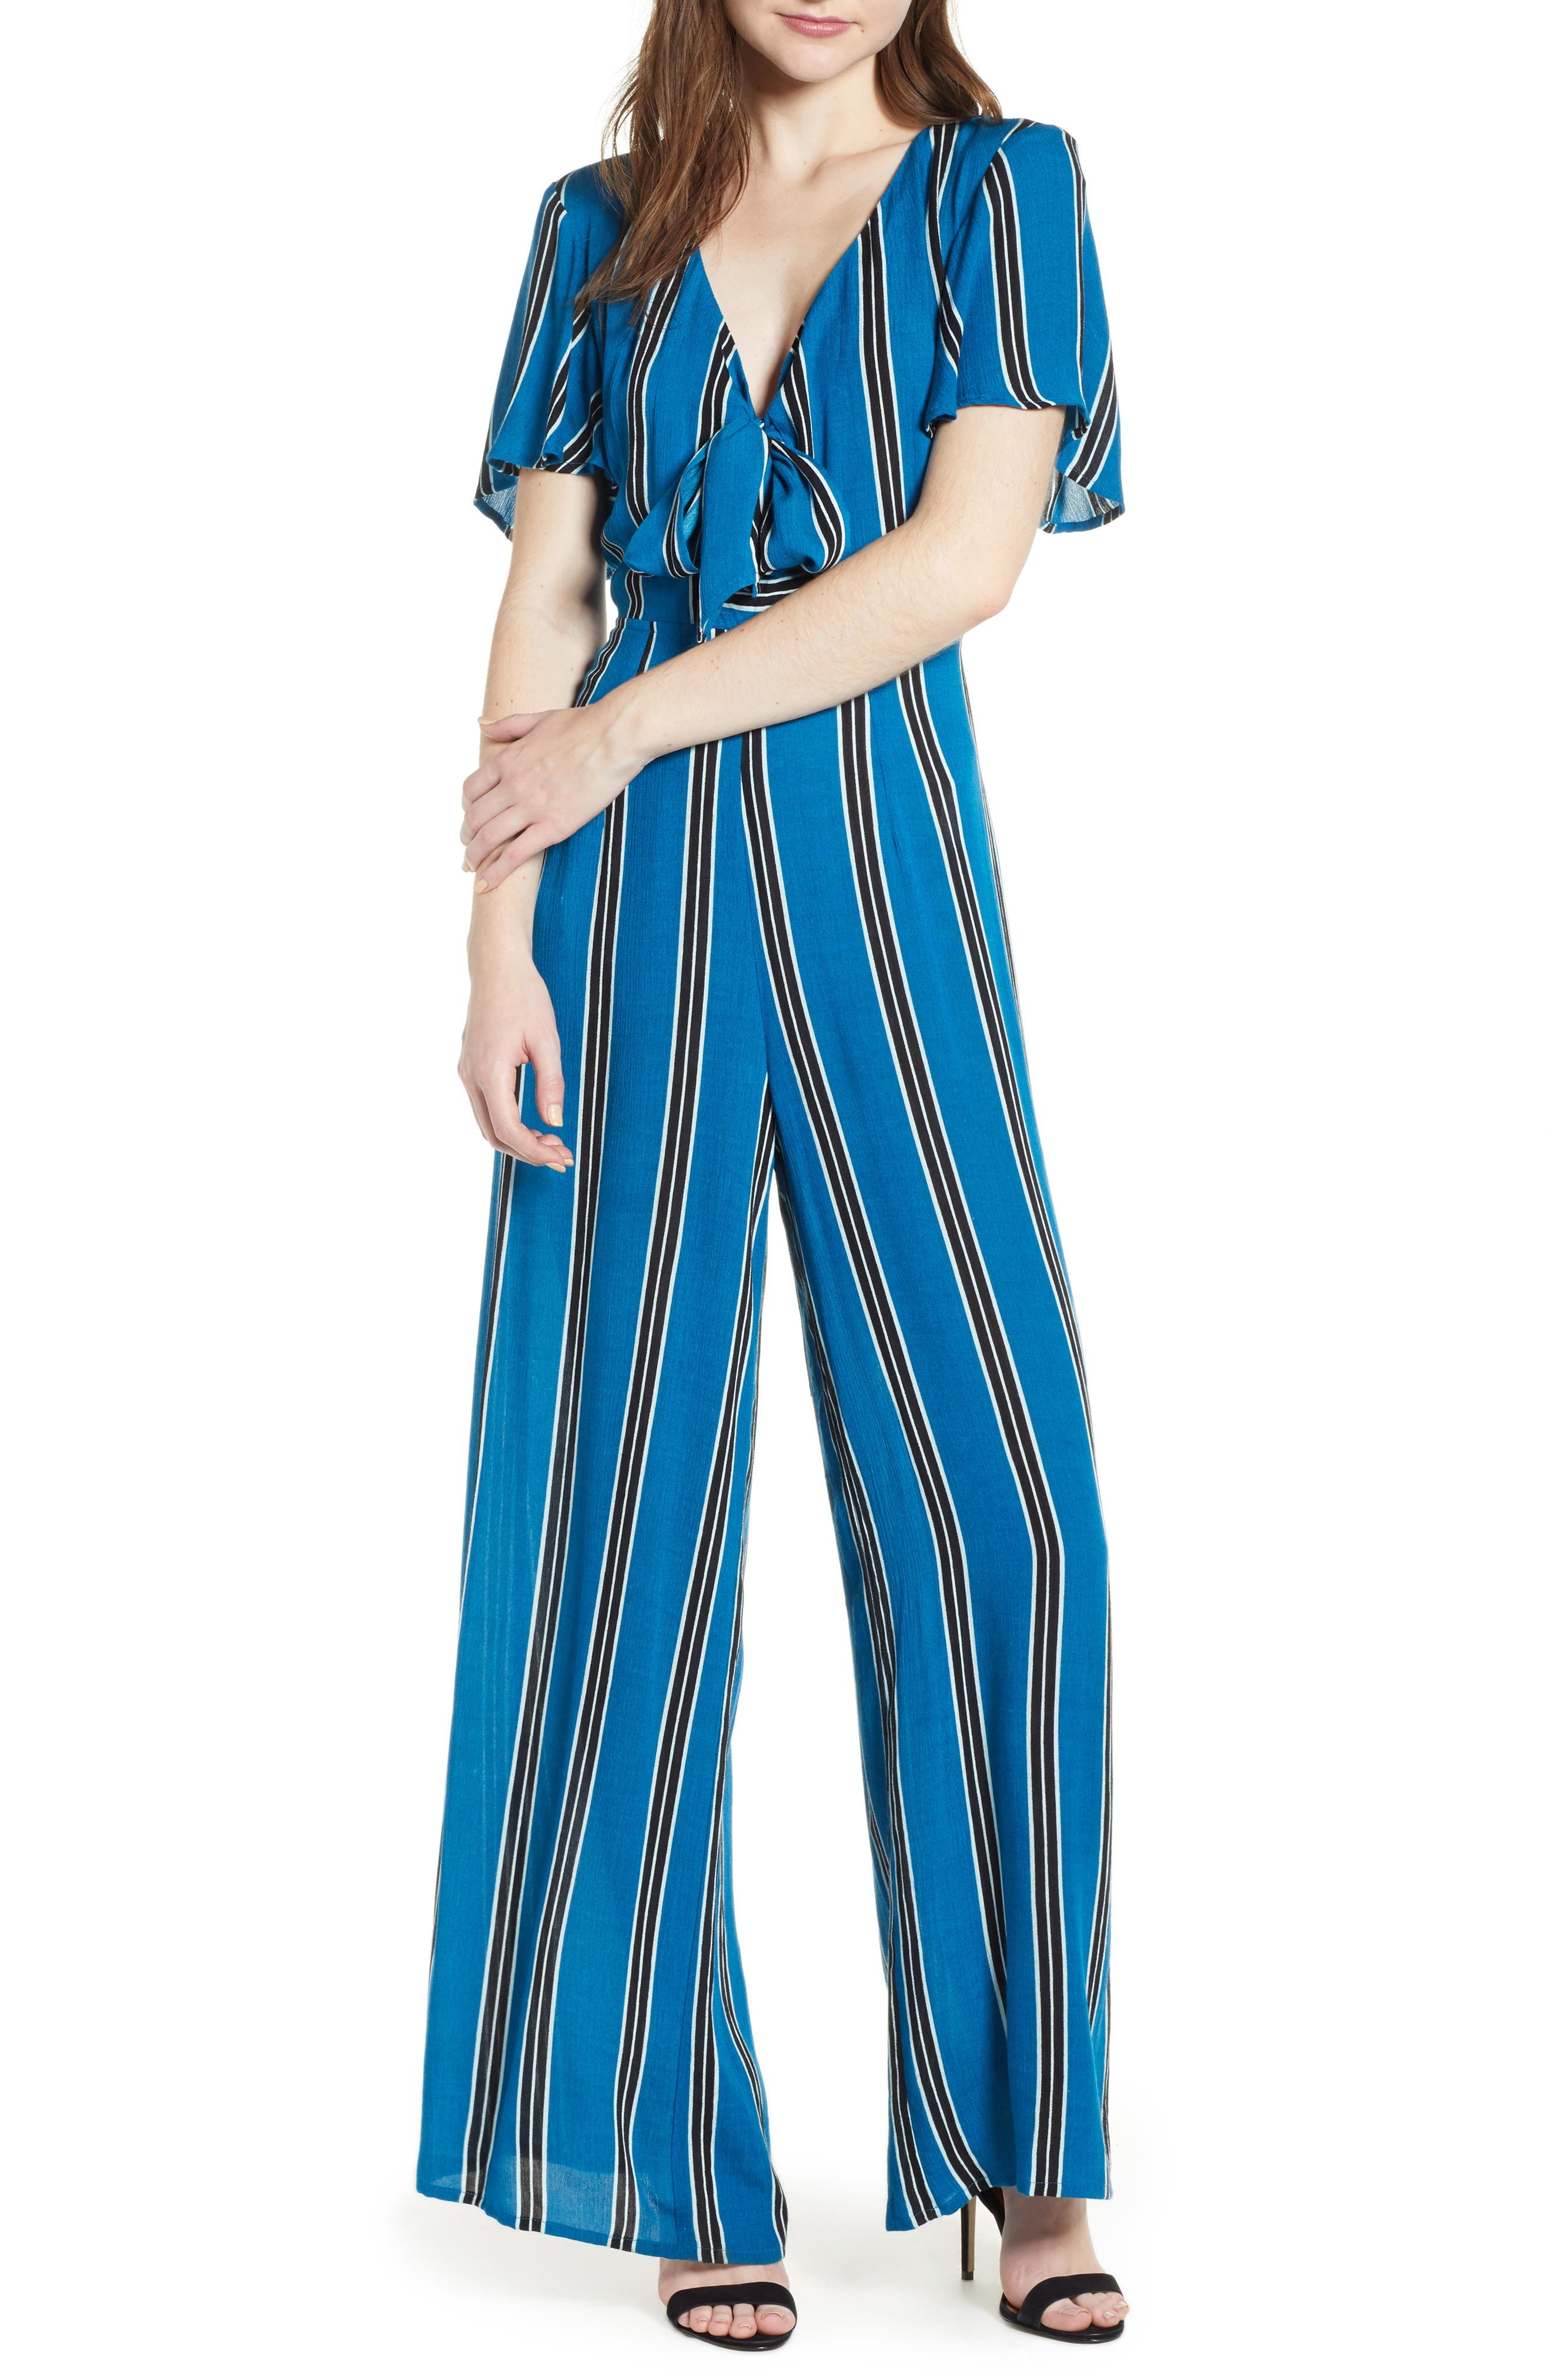 BAND OF GYPSIES Knot Front Stripe Jumpsuit, Main, color, 400